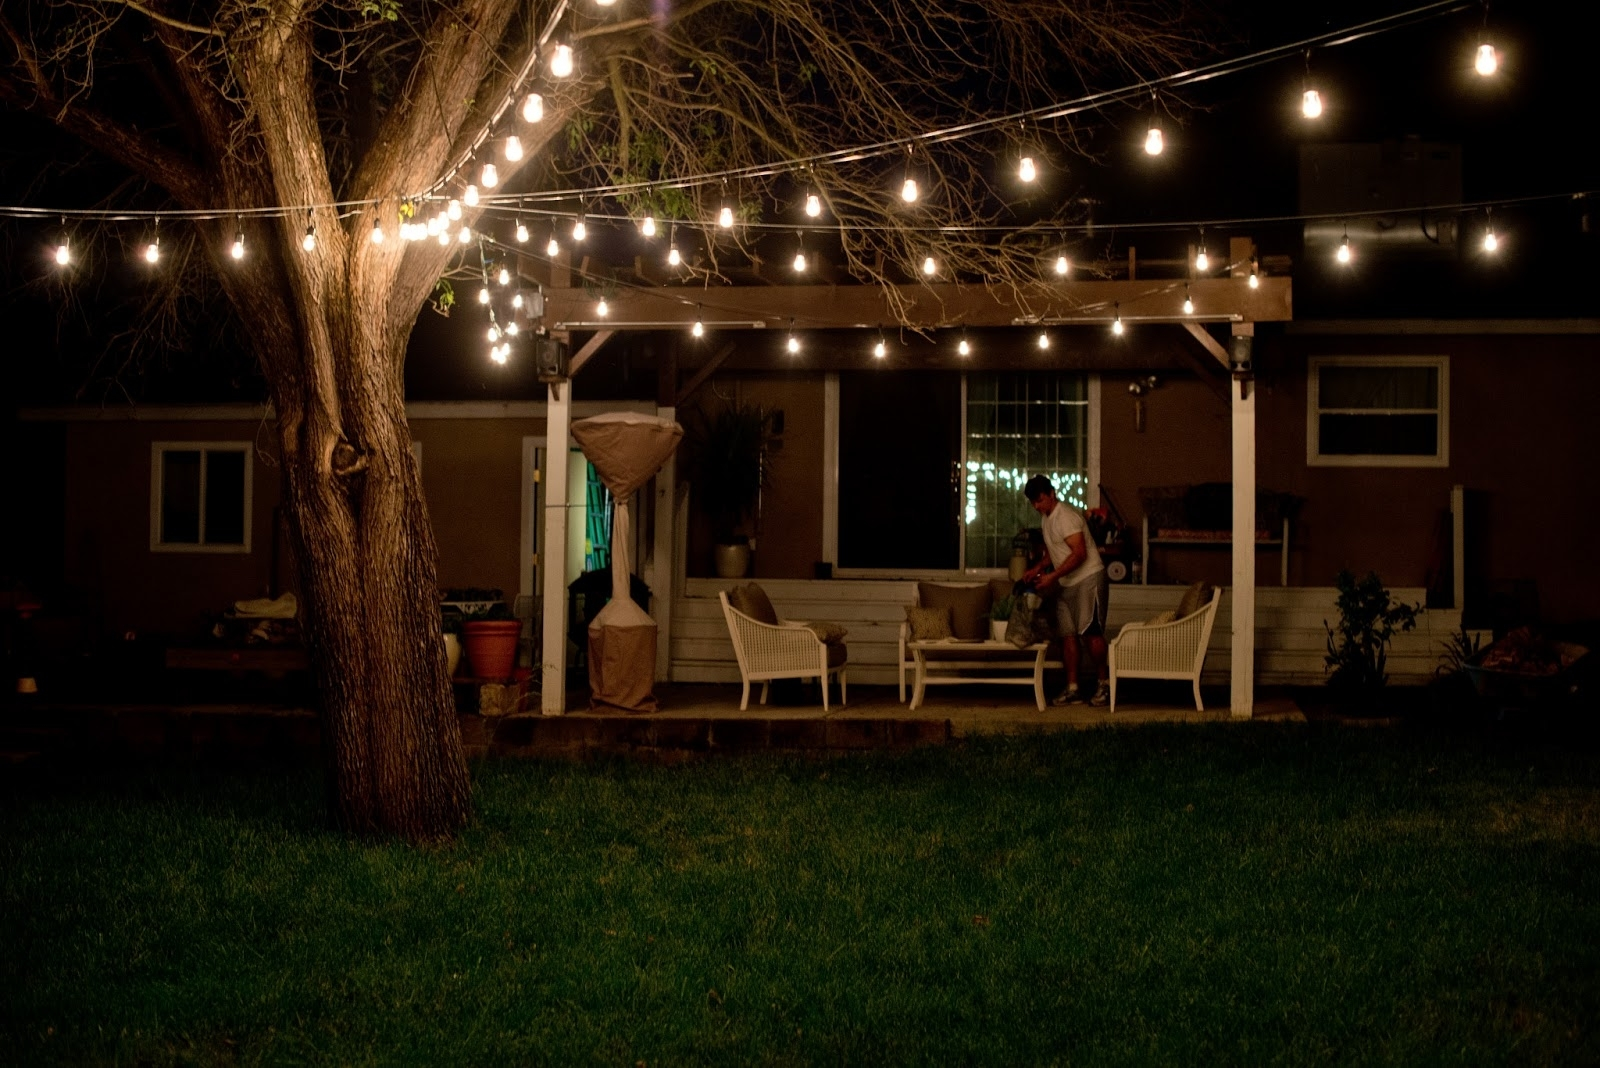 Preferred Solar Hanging Outdoor Patio Lights Pertaining To Incredible Hanging Patio Lights The Benefits Of Outdoor Patio Lights (View 4 of 20)